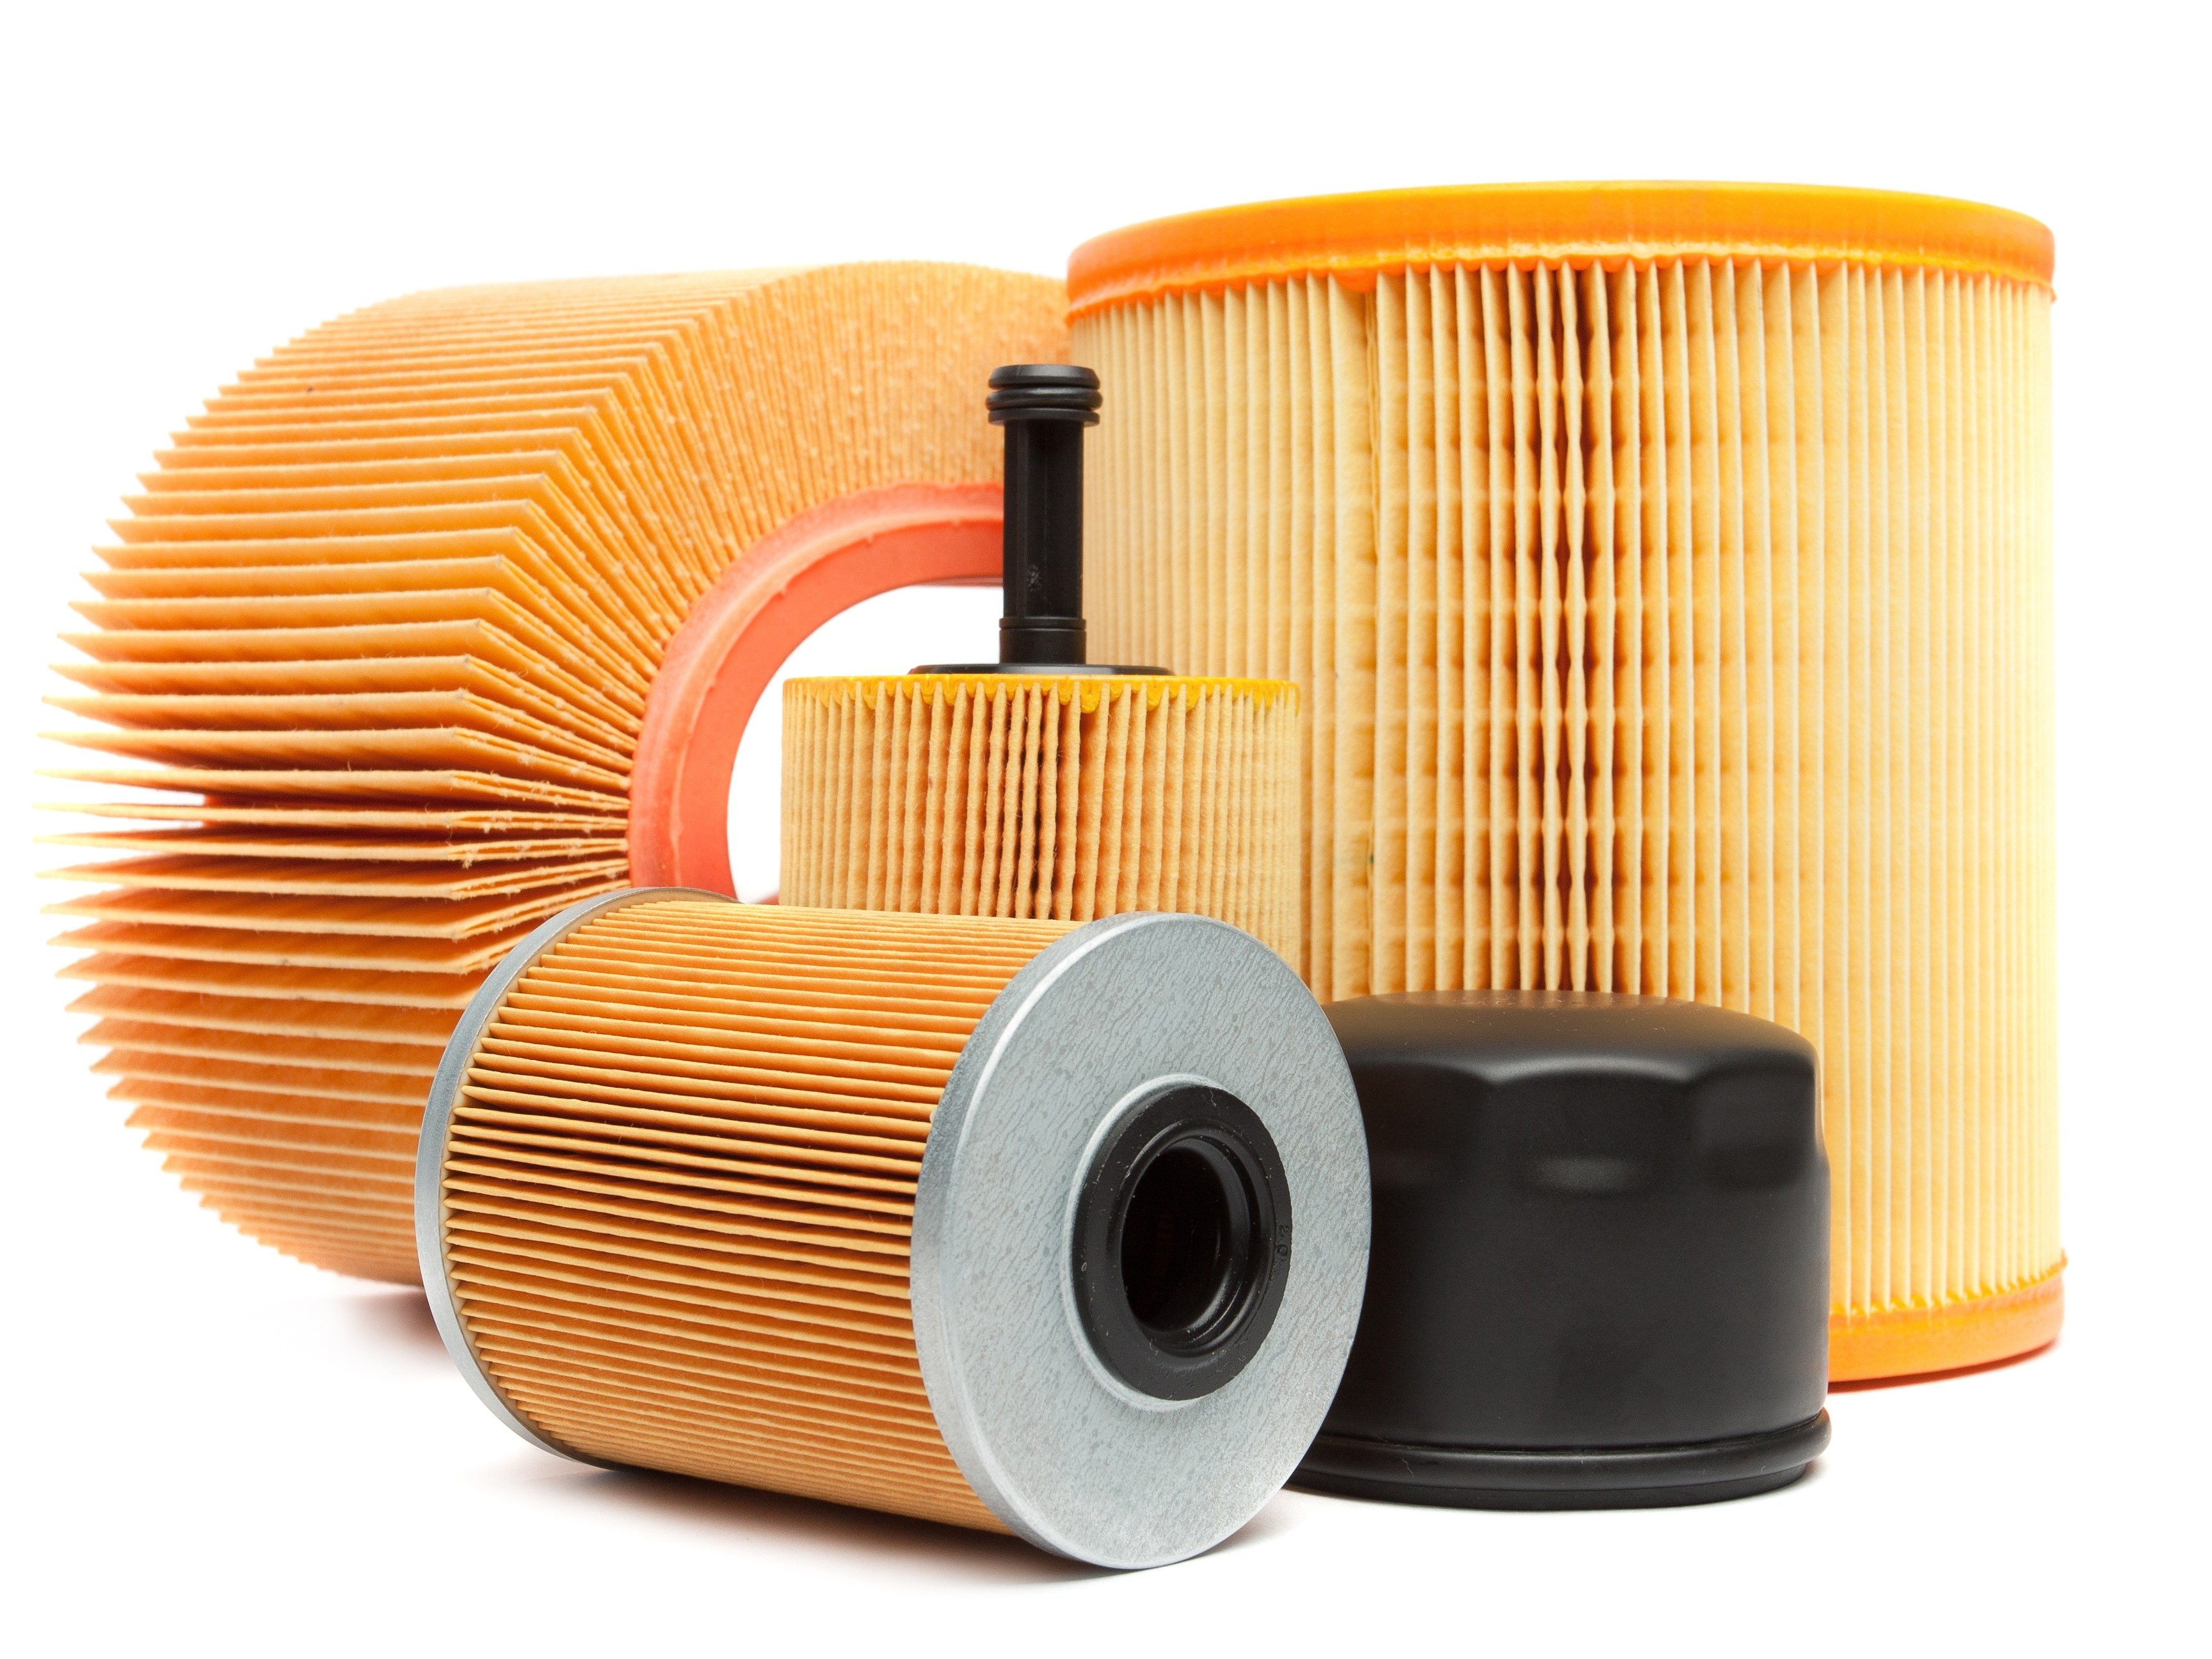 4. Change your car engine air filter.